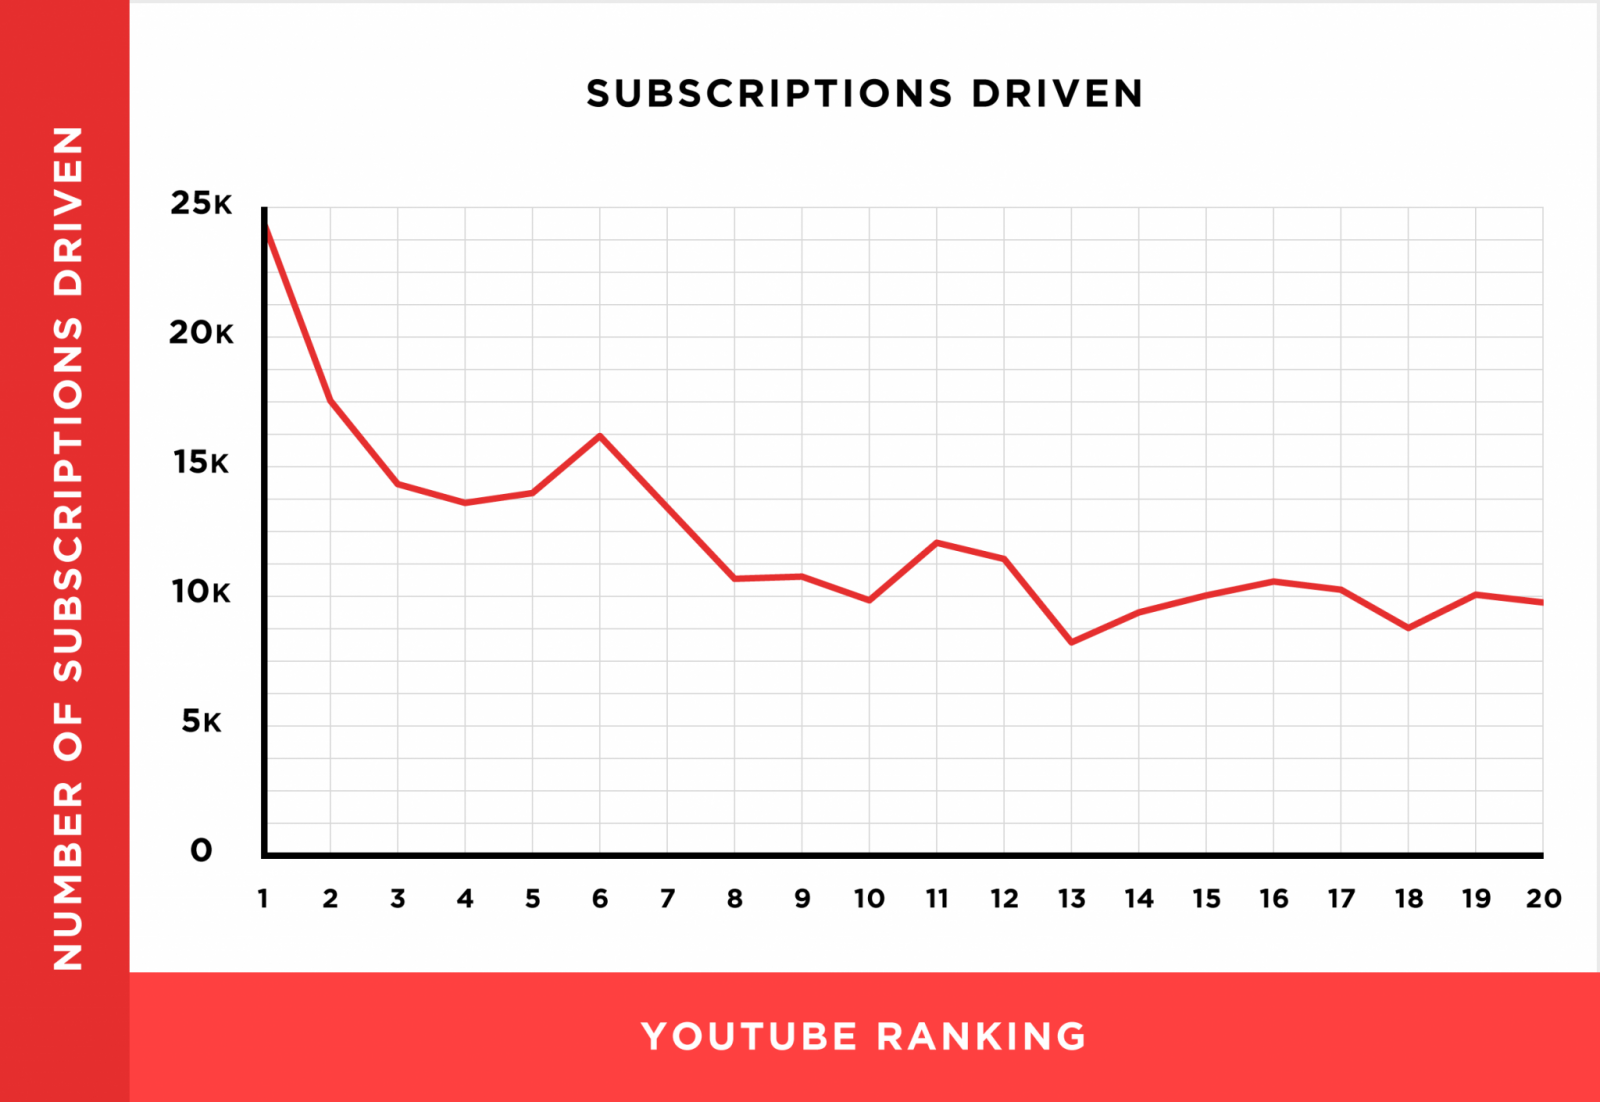 subscriptions-driven-rankings